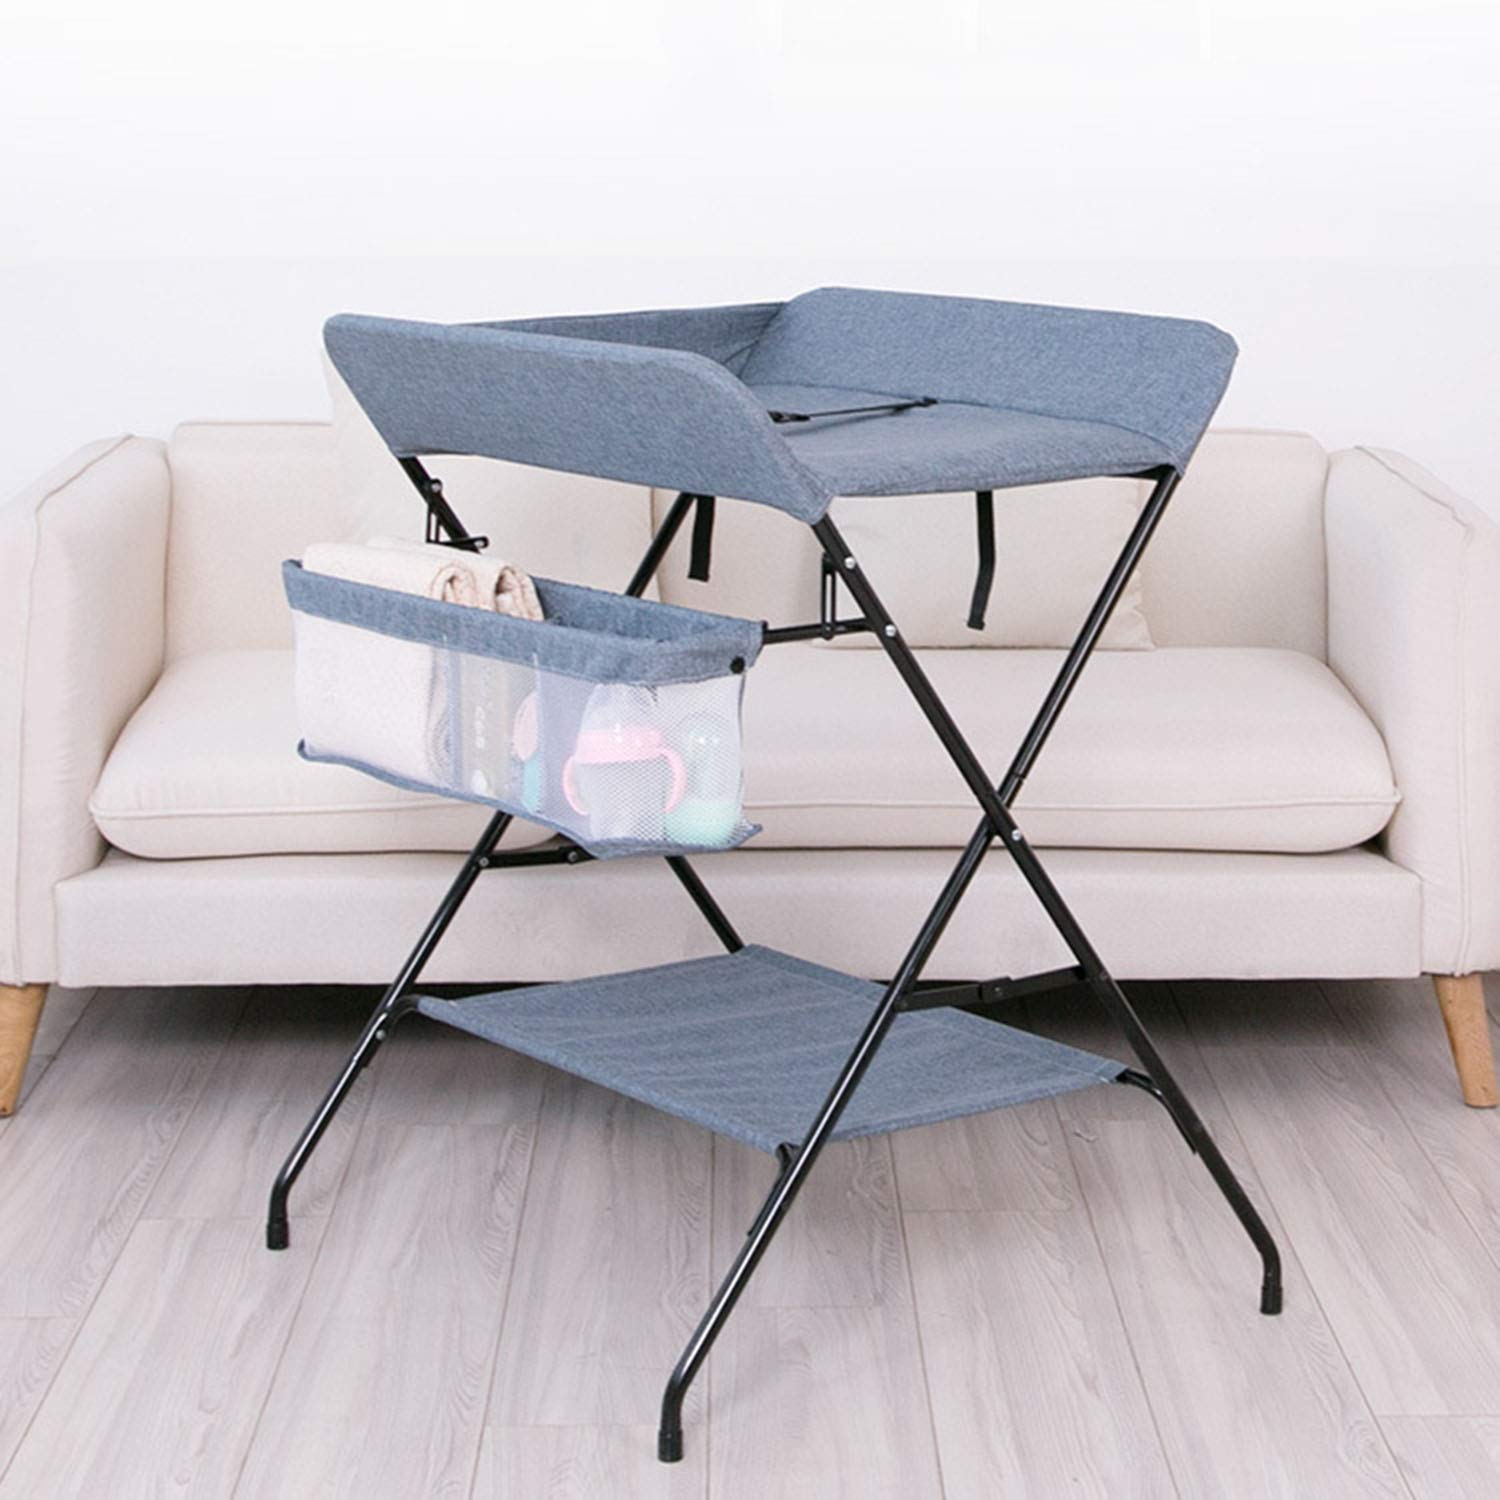 Massage Care Table,Touching Table WSXX Newborn Baby Changing Clothes Diaper Table Multi-Function Folding